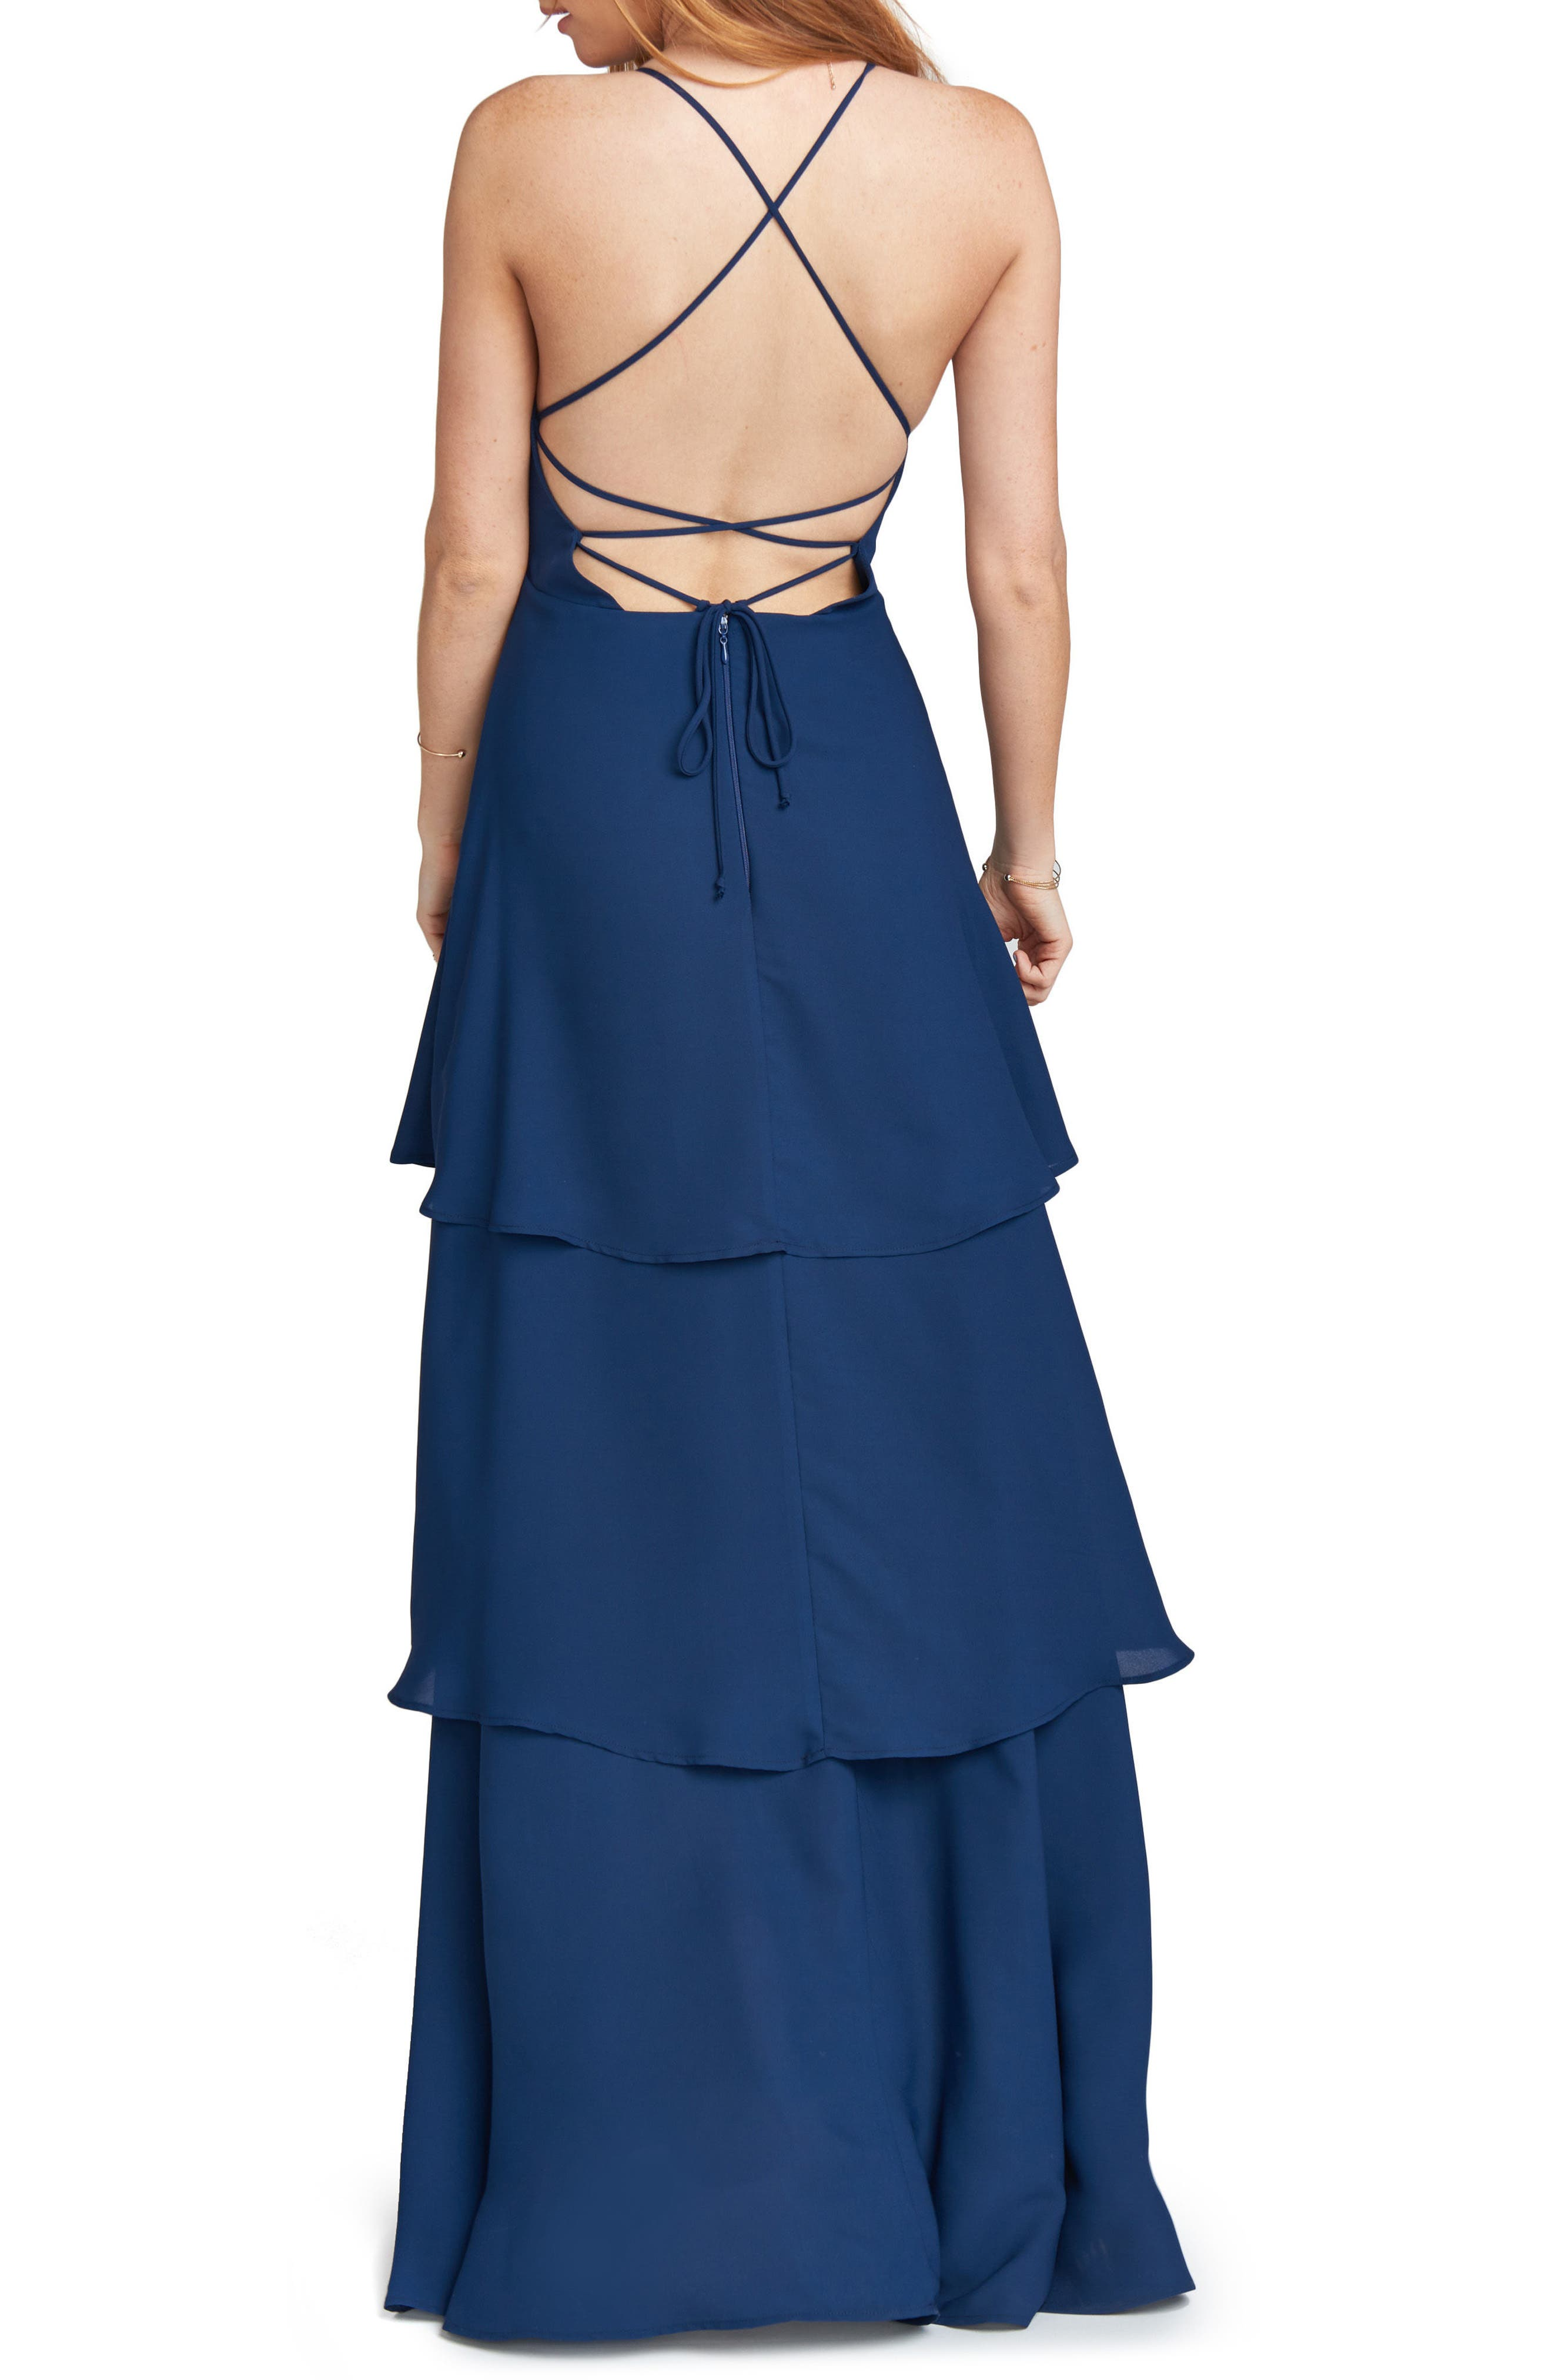 Calypso Strappy Tiered Maxi Dress,                             Alternate thumbnail 2, color,                             Rich Navy